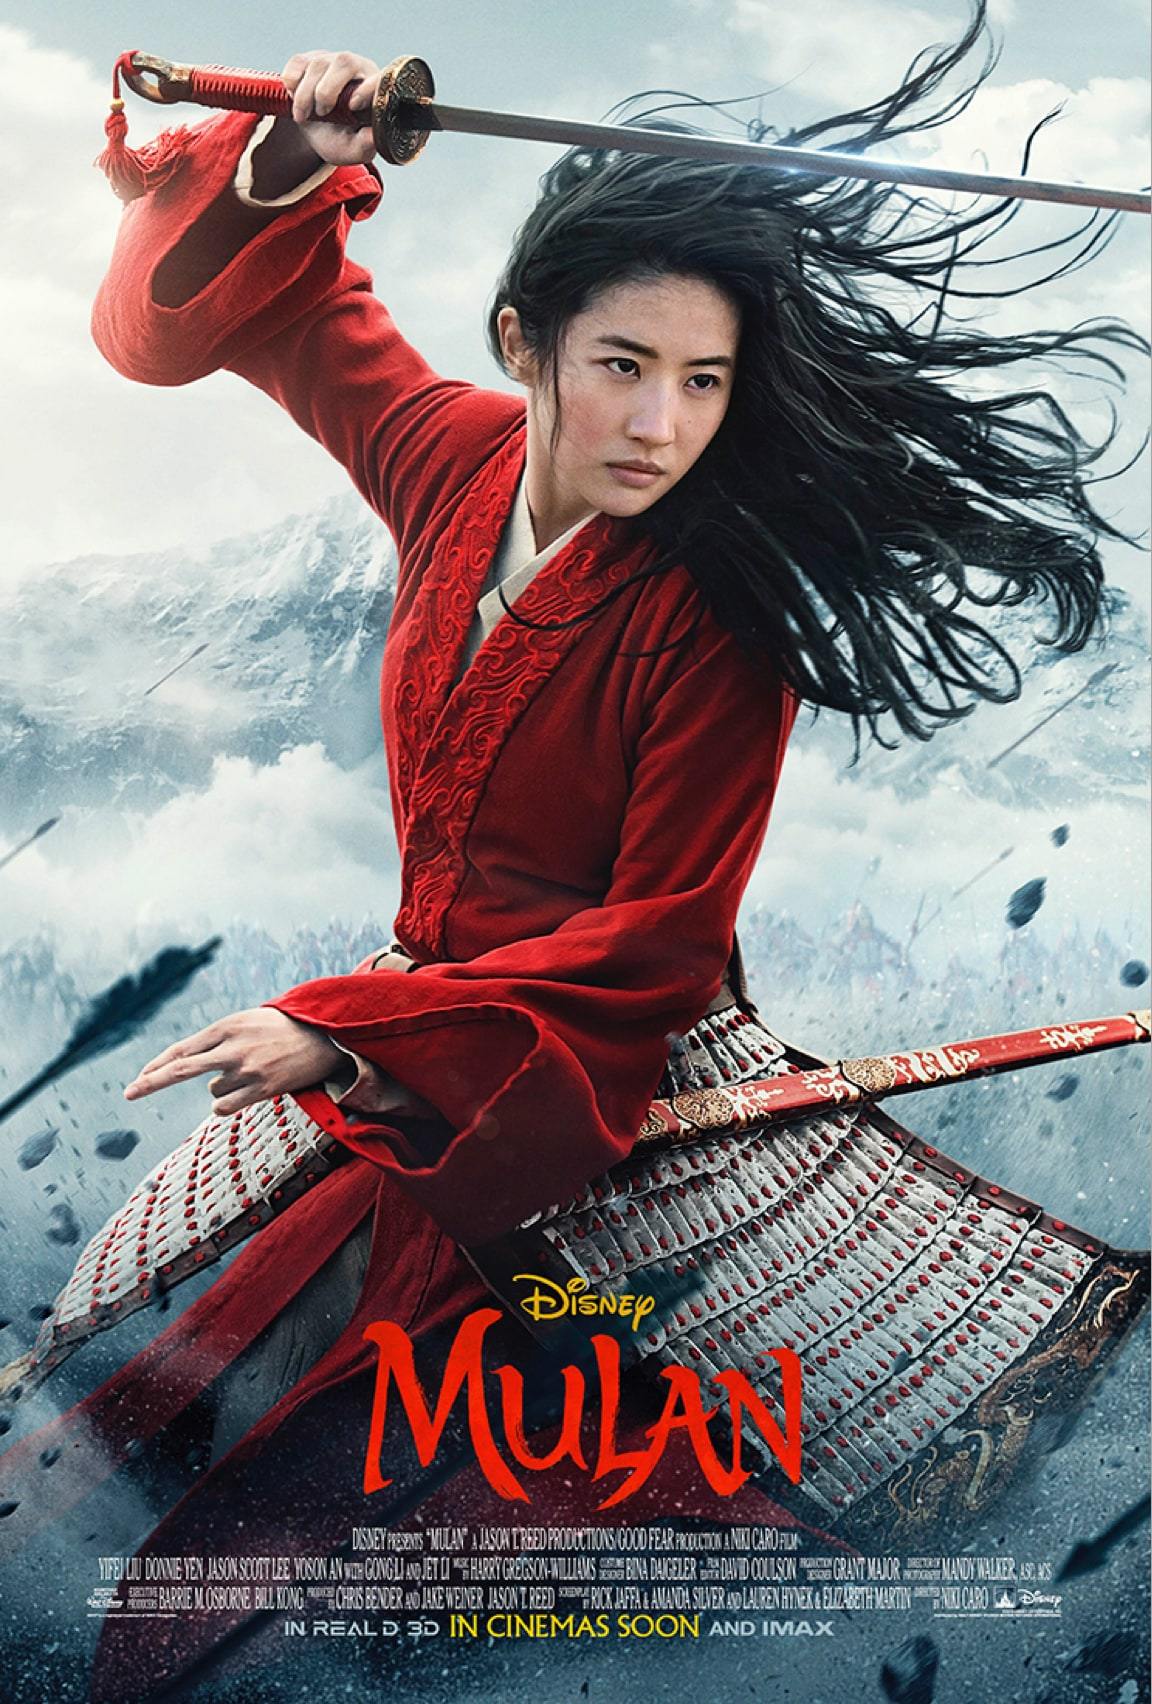 Mulan wielding a sword against a smoky background